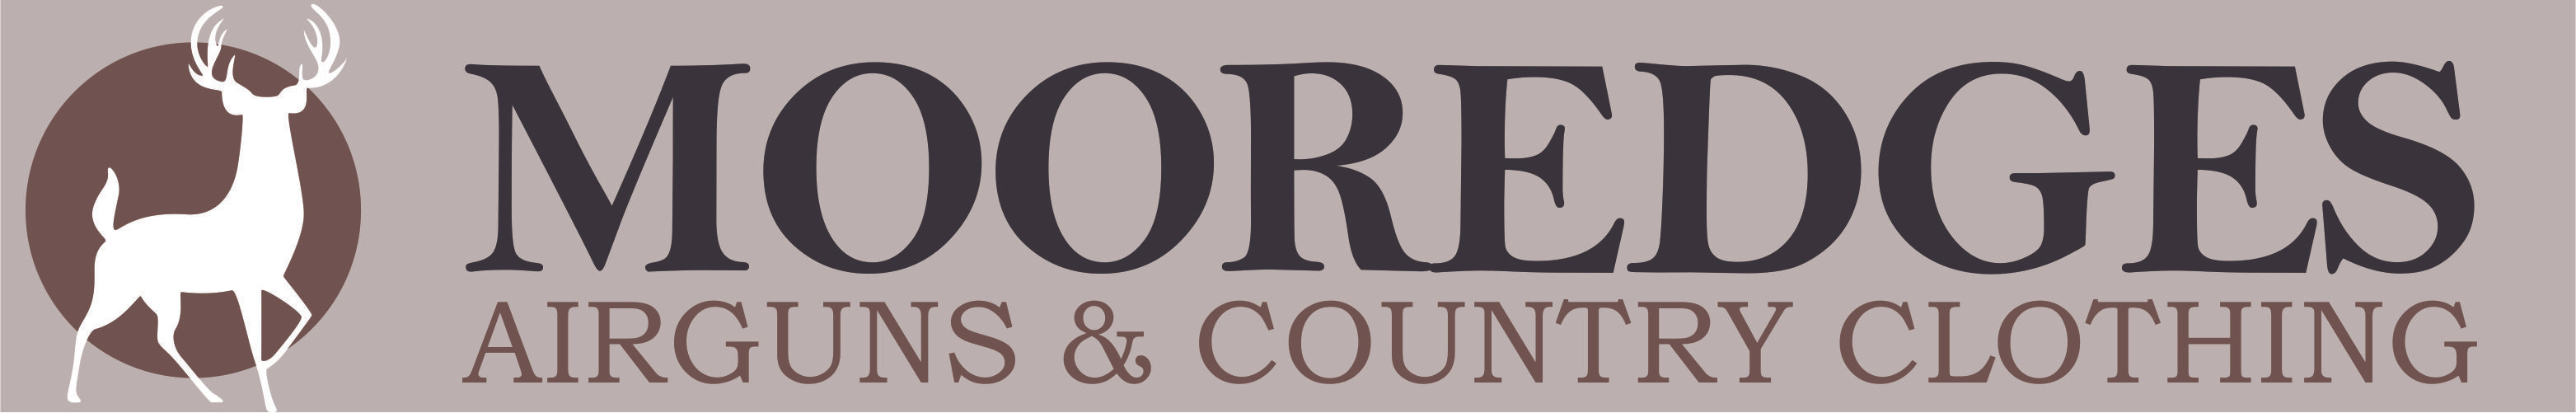 Mooredges Airguns & Country Clothing